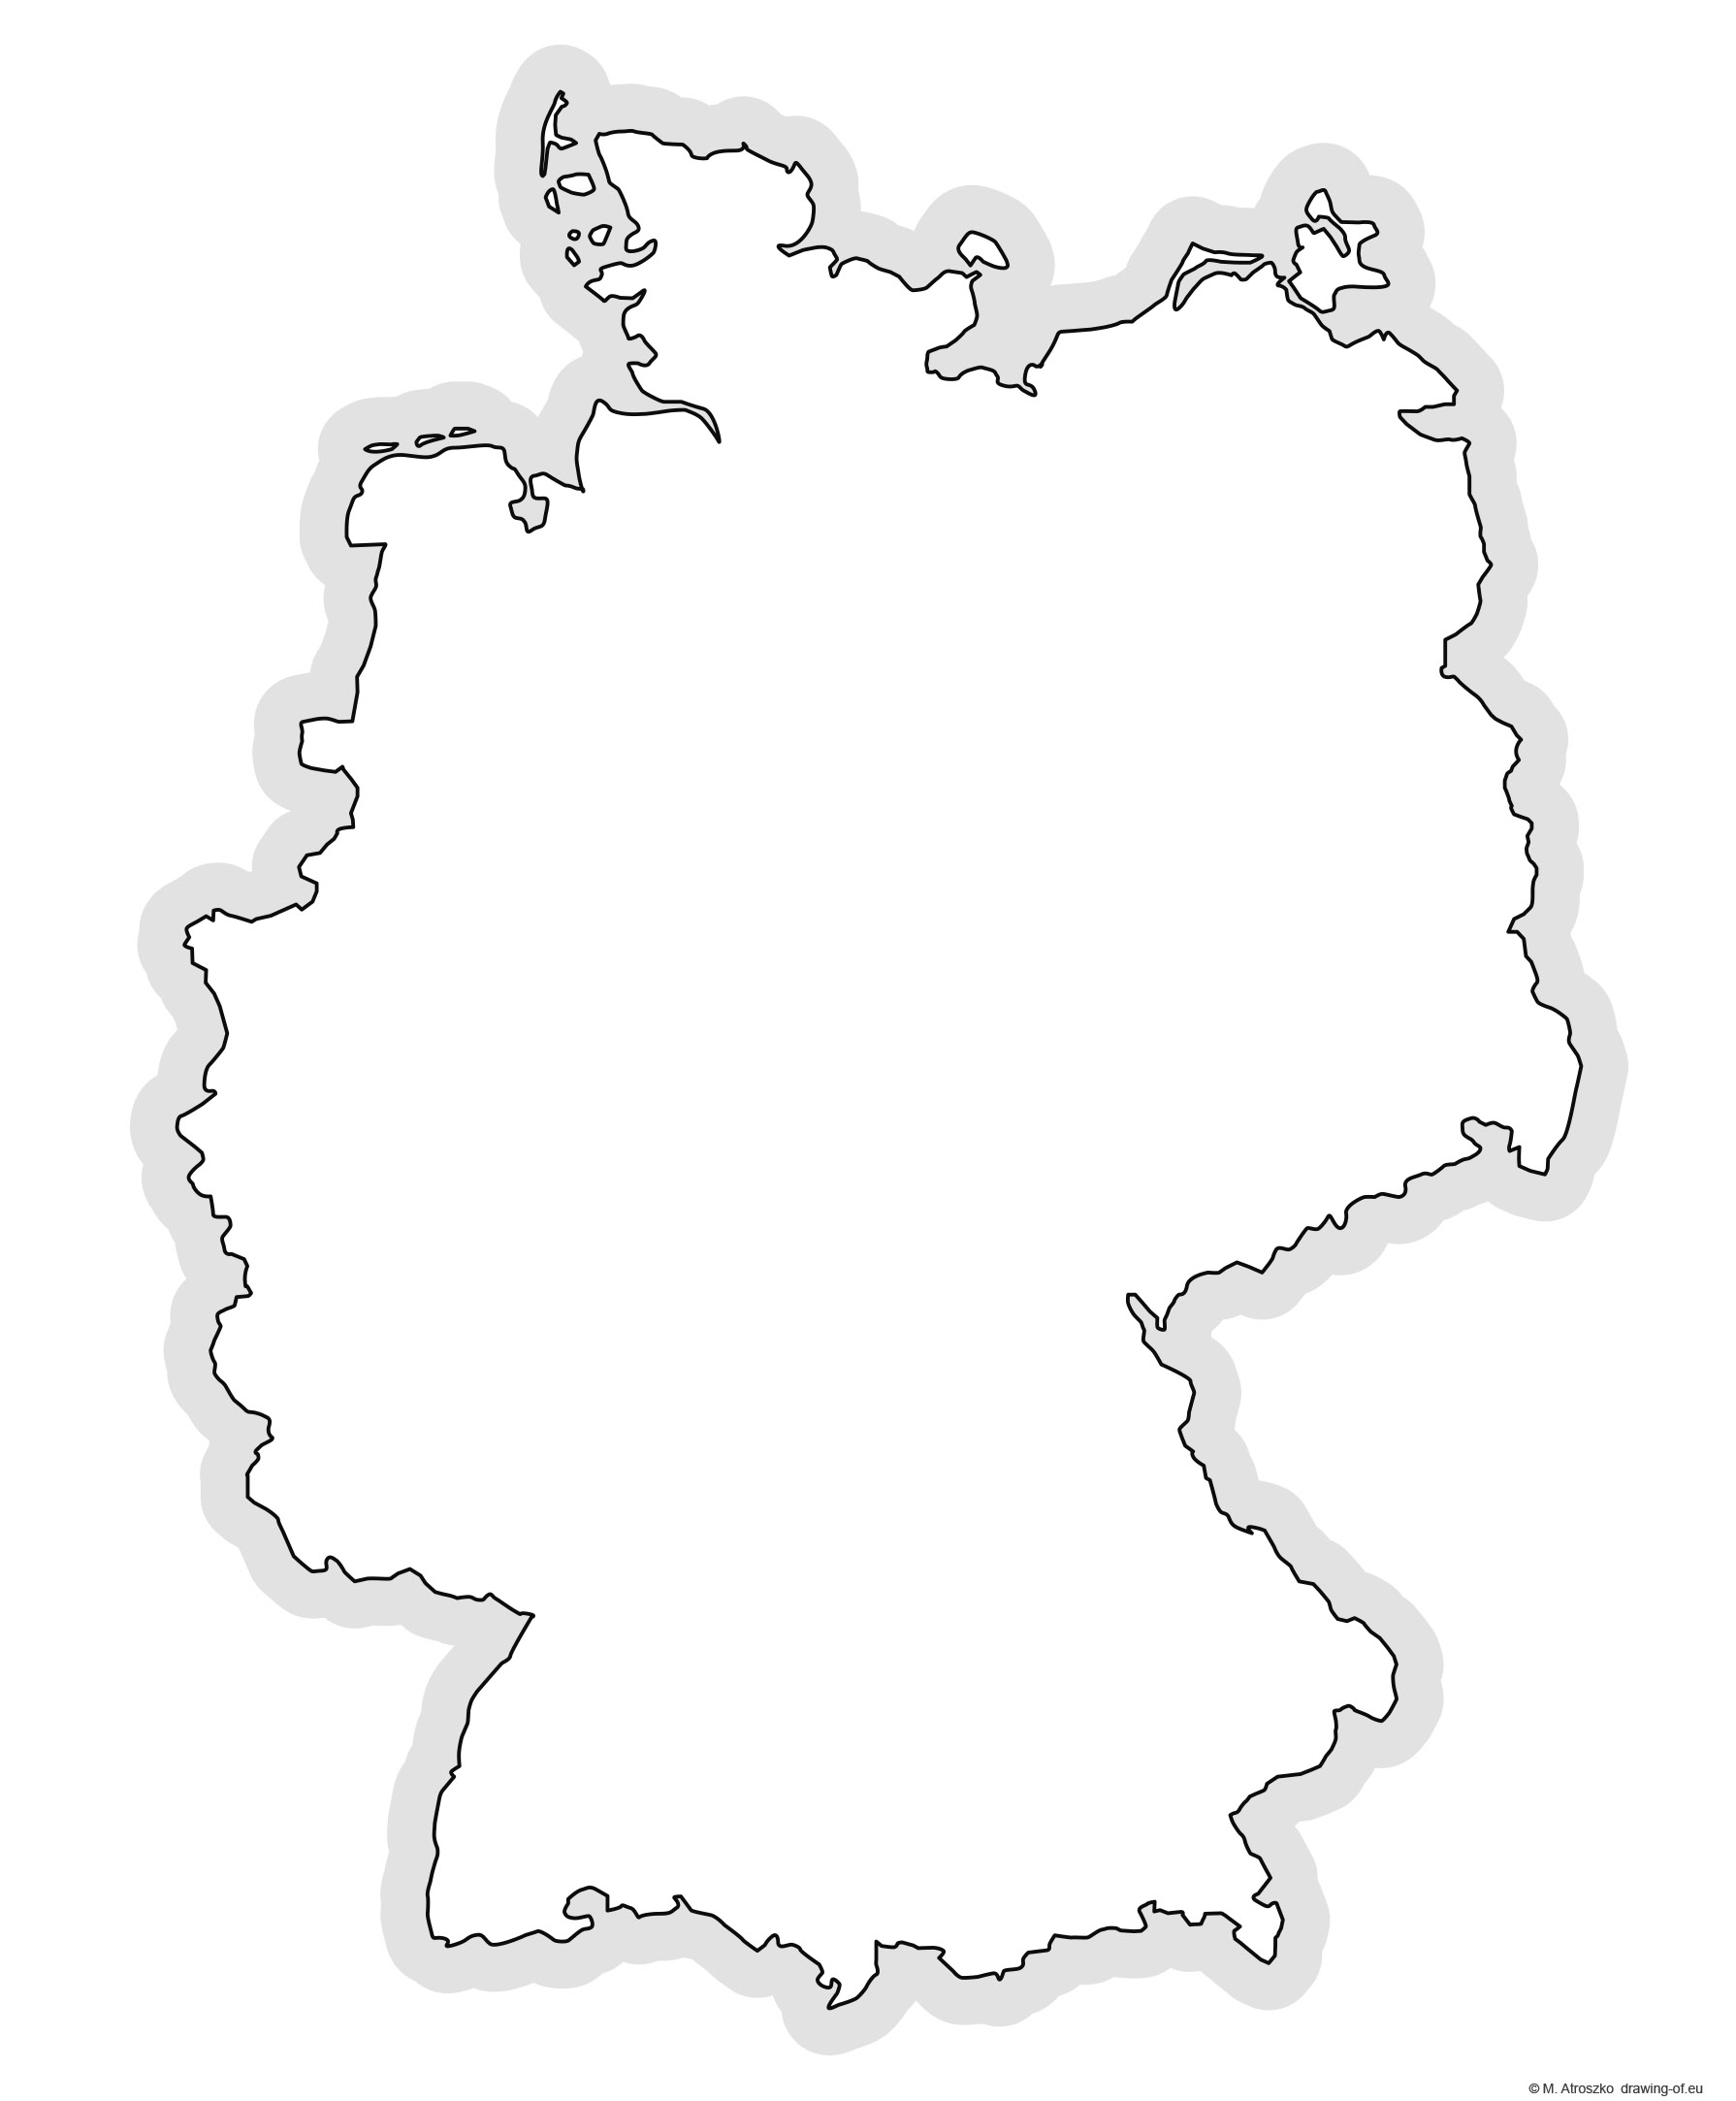 Contour map of Germany